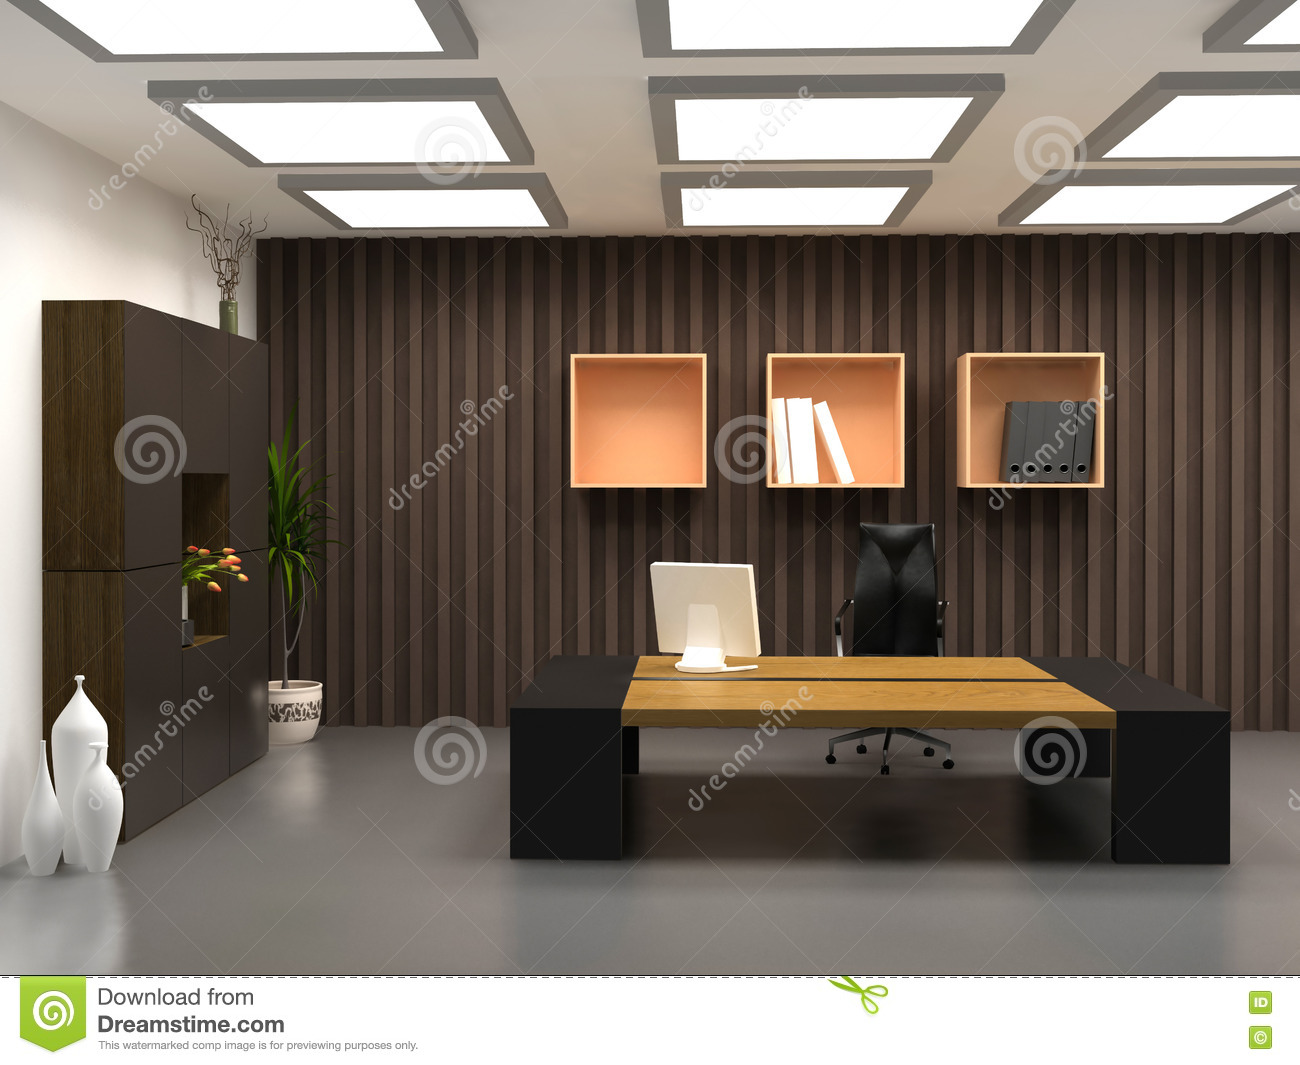 Le bureau moderne photographie stock libre de droits image 2263387 for Photos gratuites travail bureau